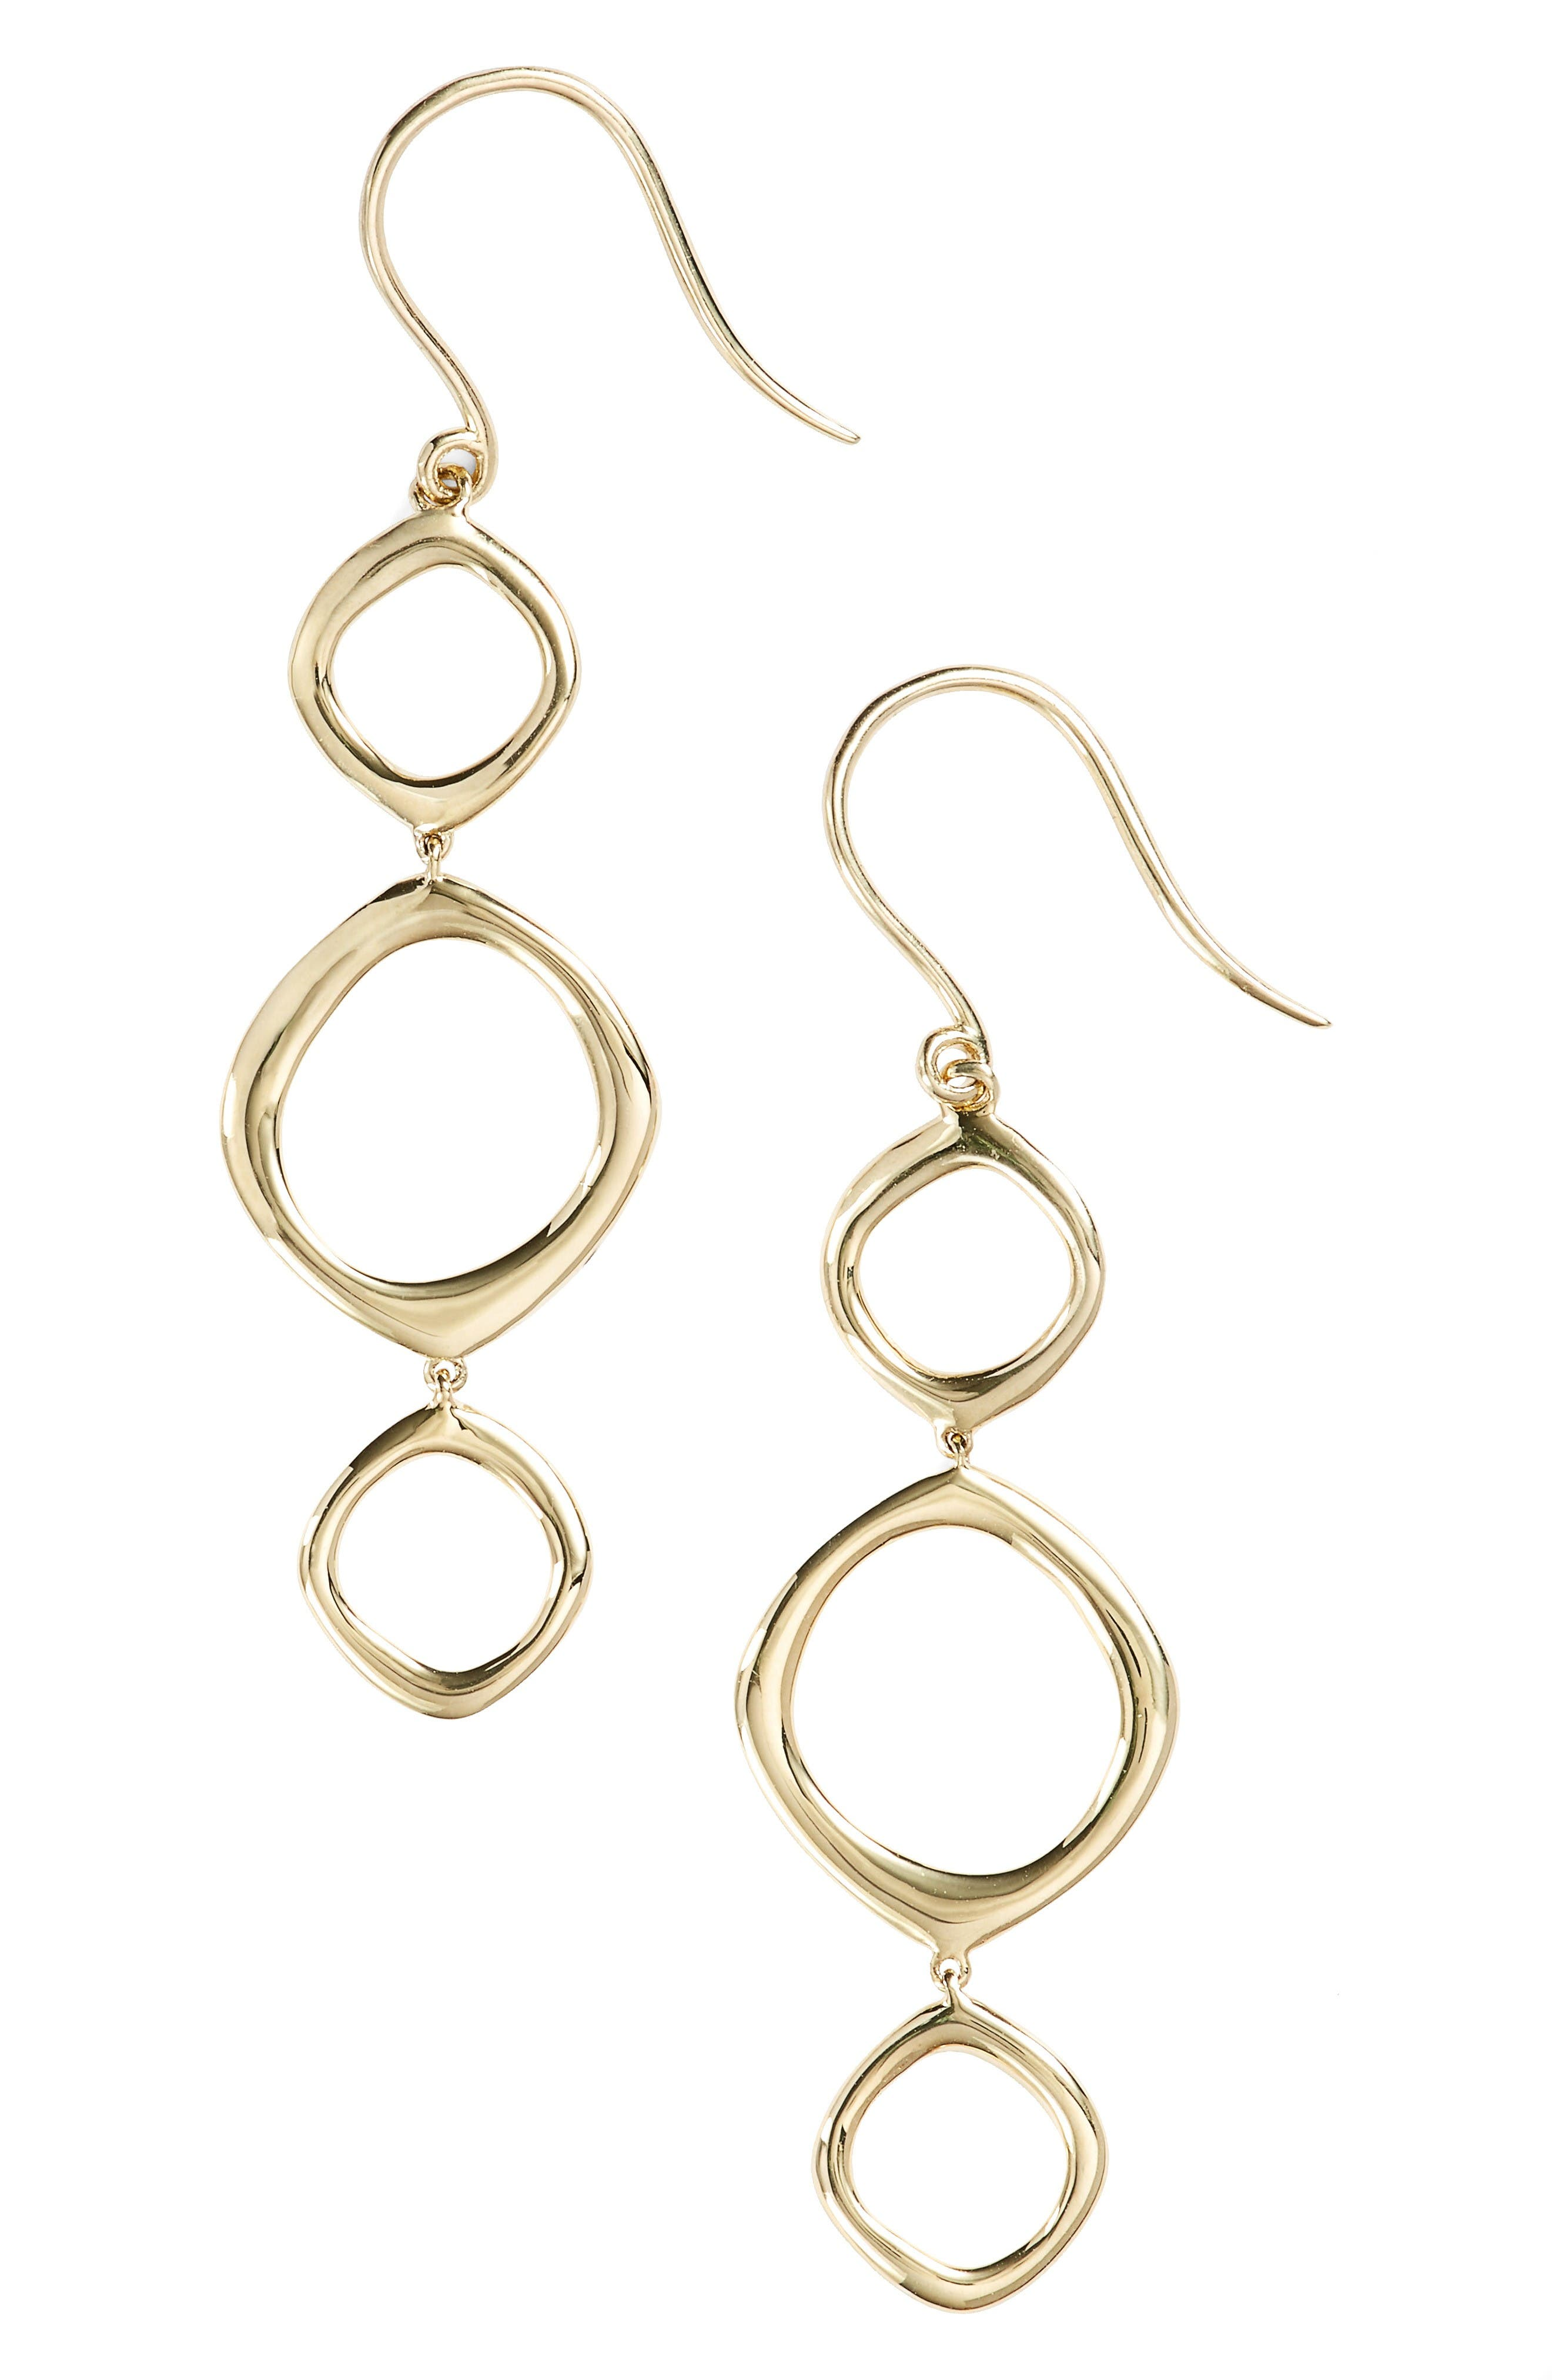 Alternate Image 1 Selected - Bony Levy Geo Circle Linear Drop Earrings (Nordstrom Exclusive)